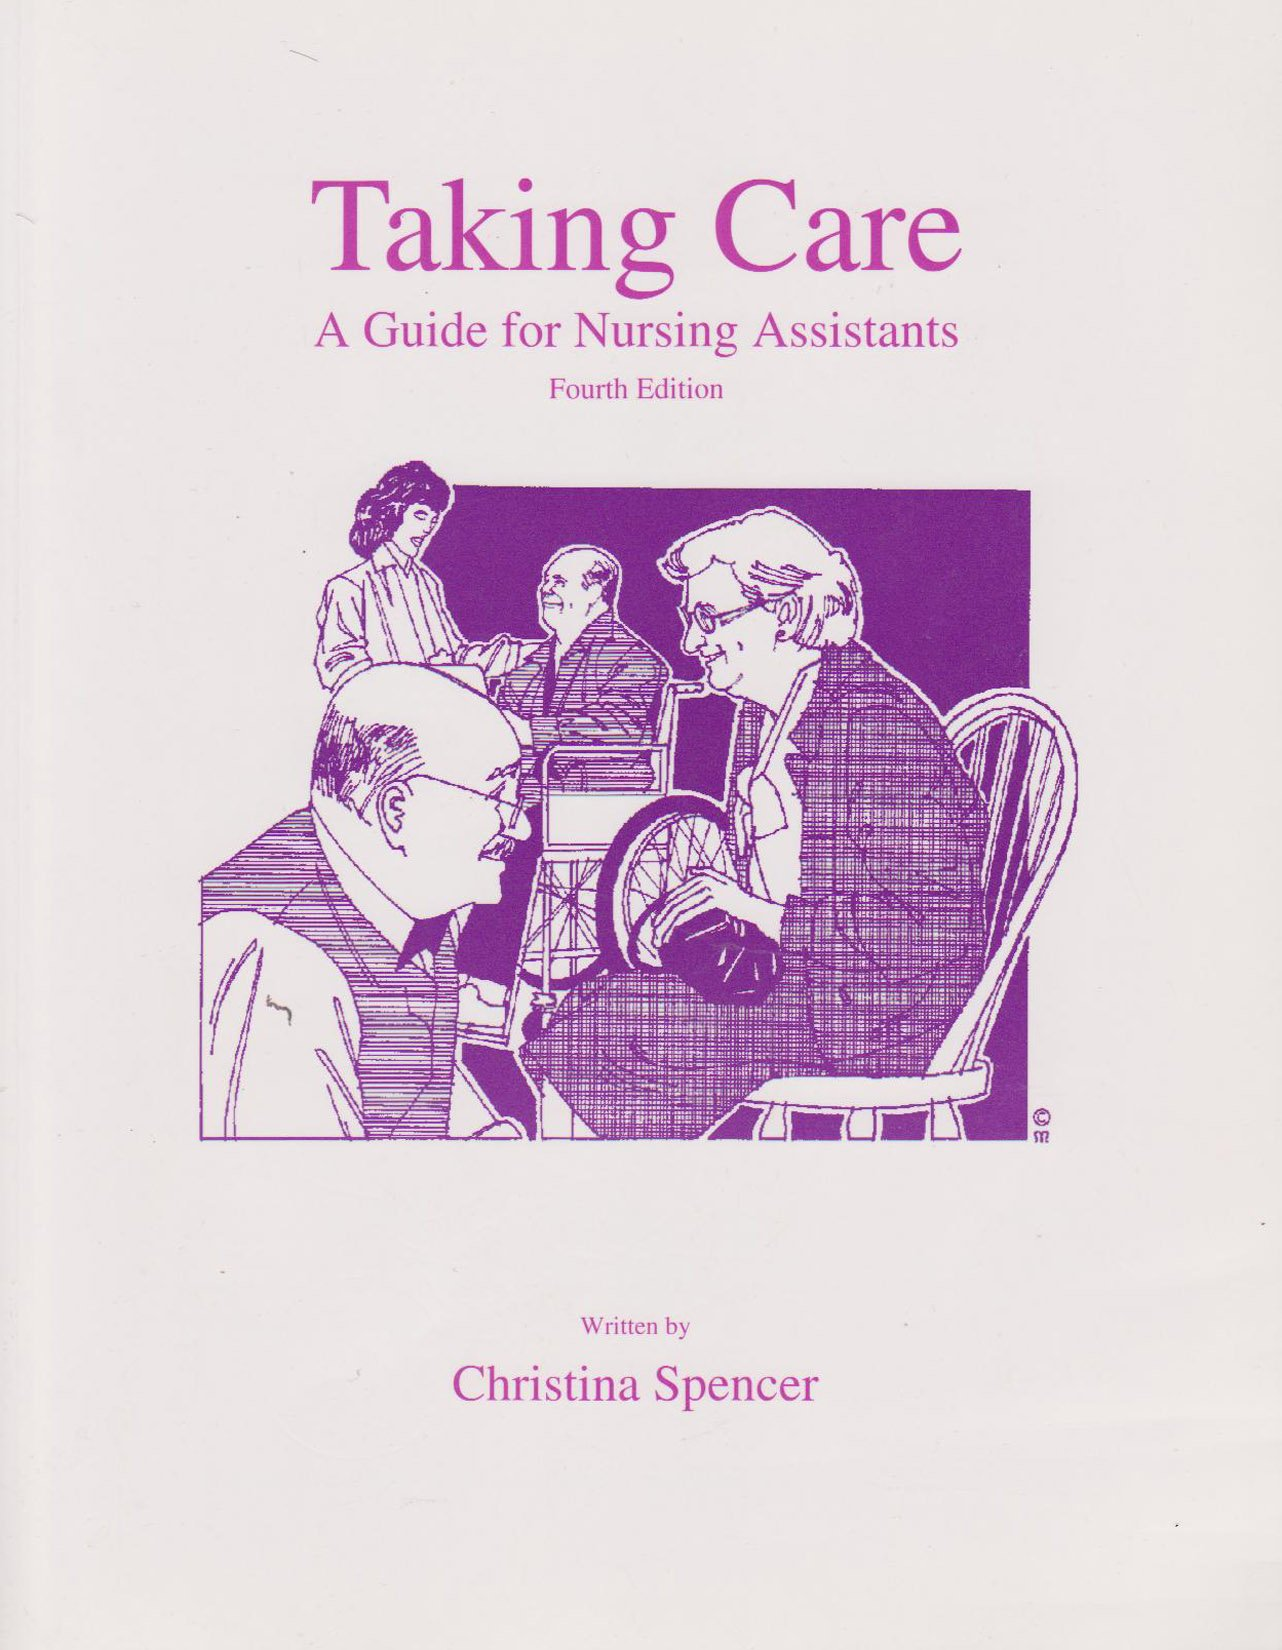 Taking Care : A Guide for Nursing Assistants: 4th Edition, Christina Spencer